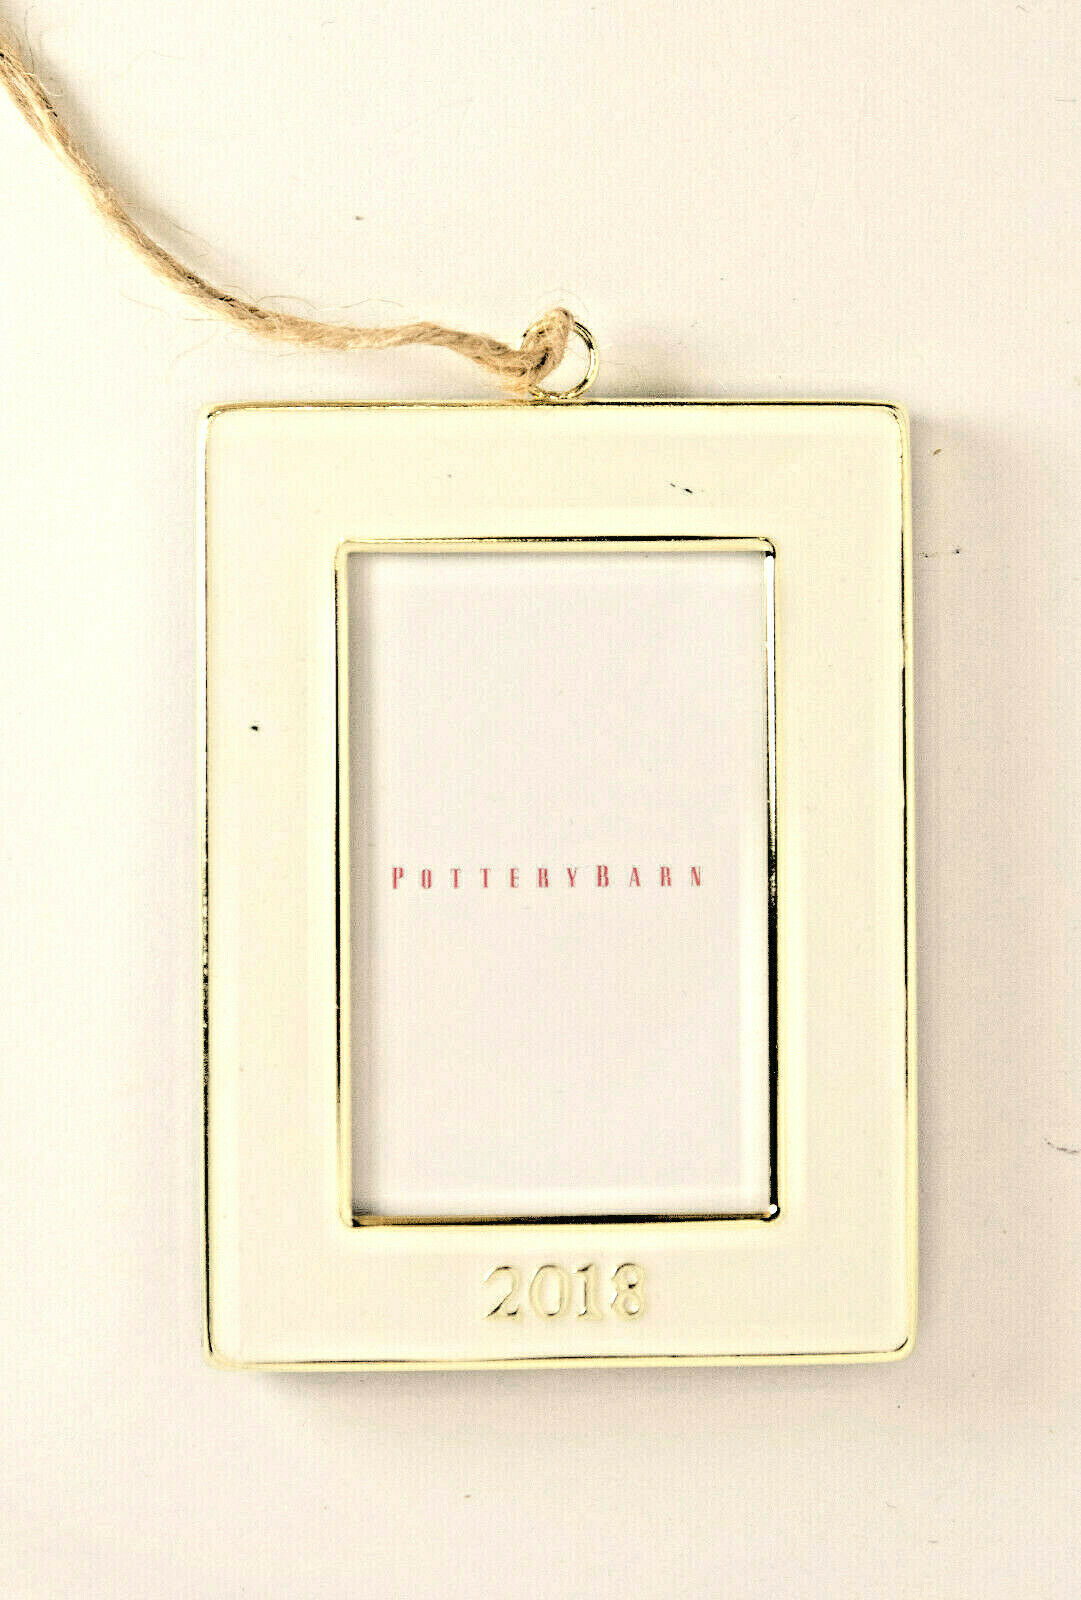 Primary image for Pottery Barn 2018 dated white enamel frame Christmas ornament